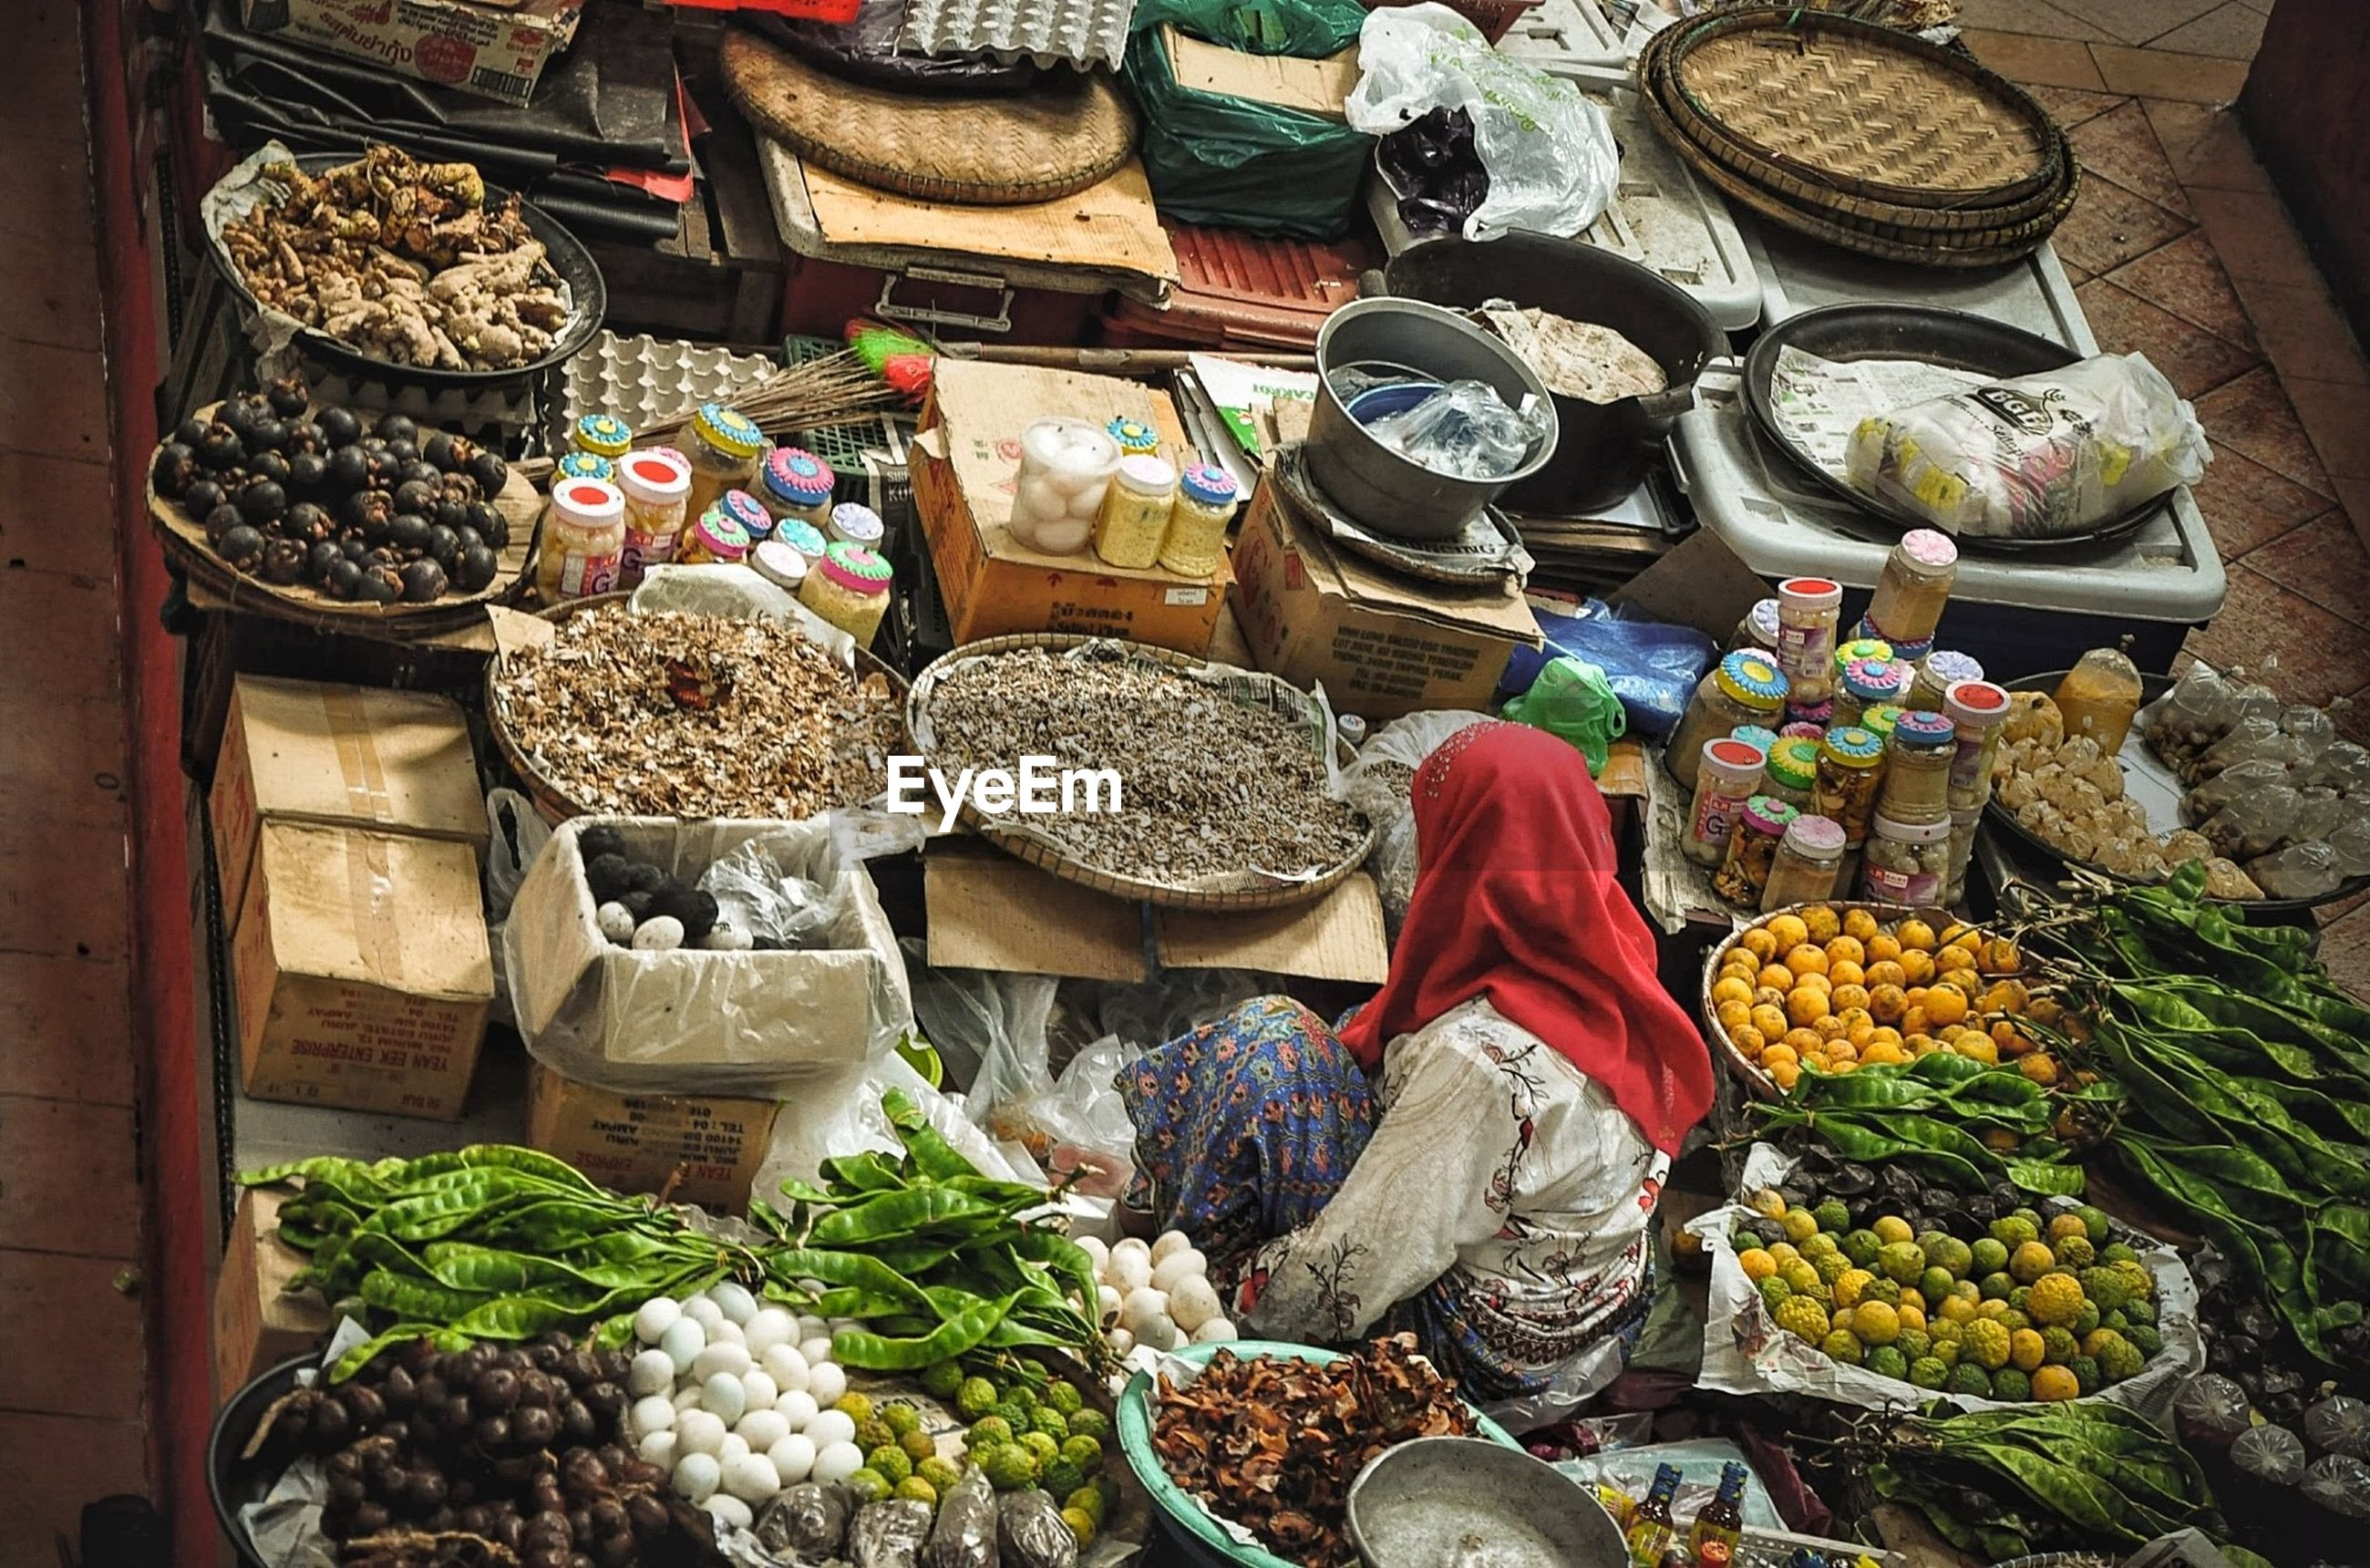 Vendor with various food for sale at market stall